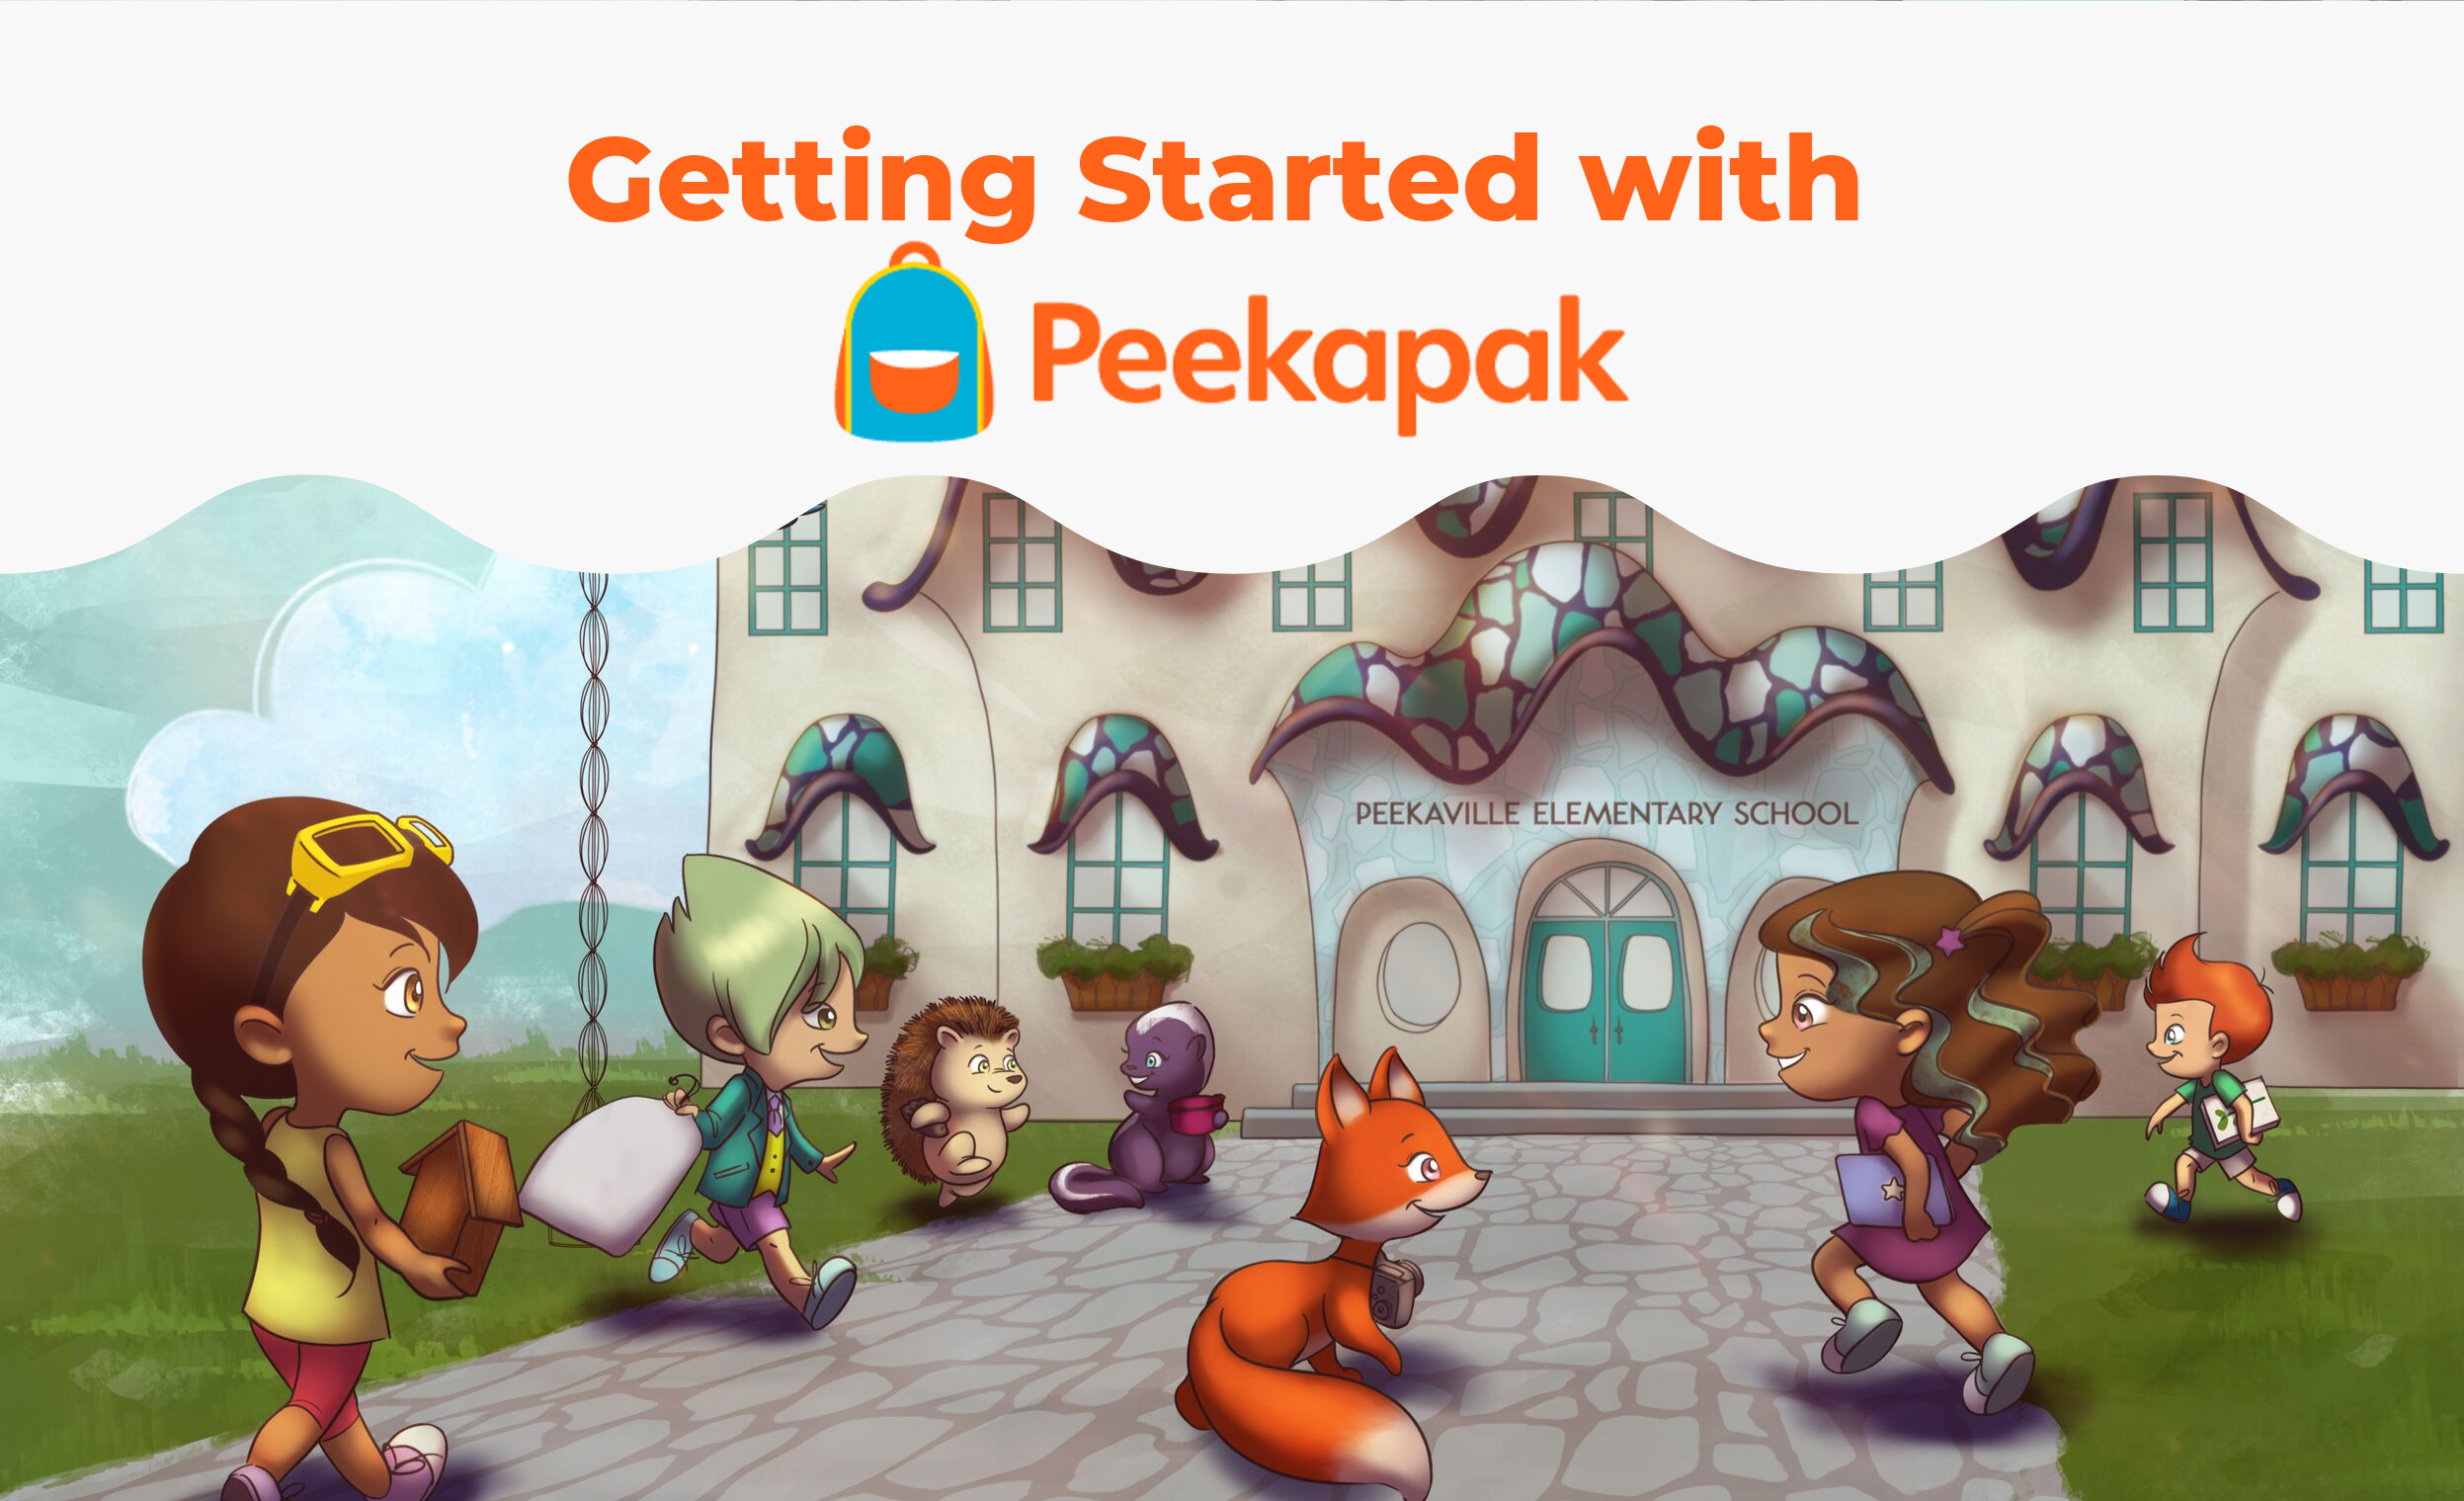 Getting Started with Peekapak